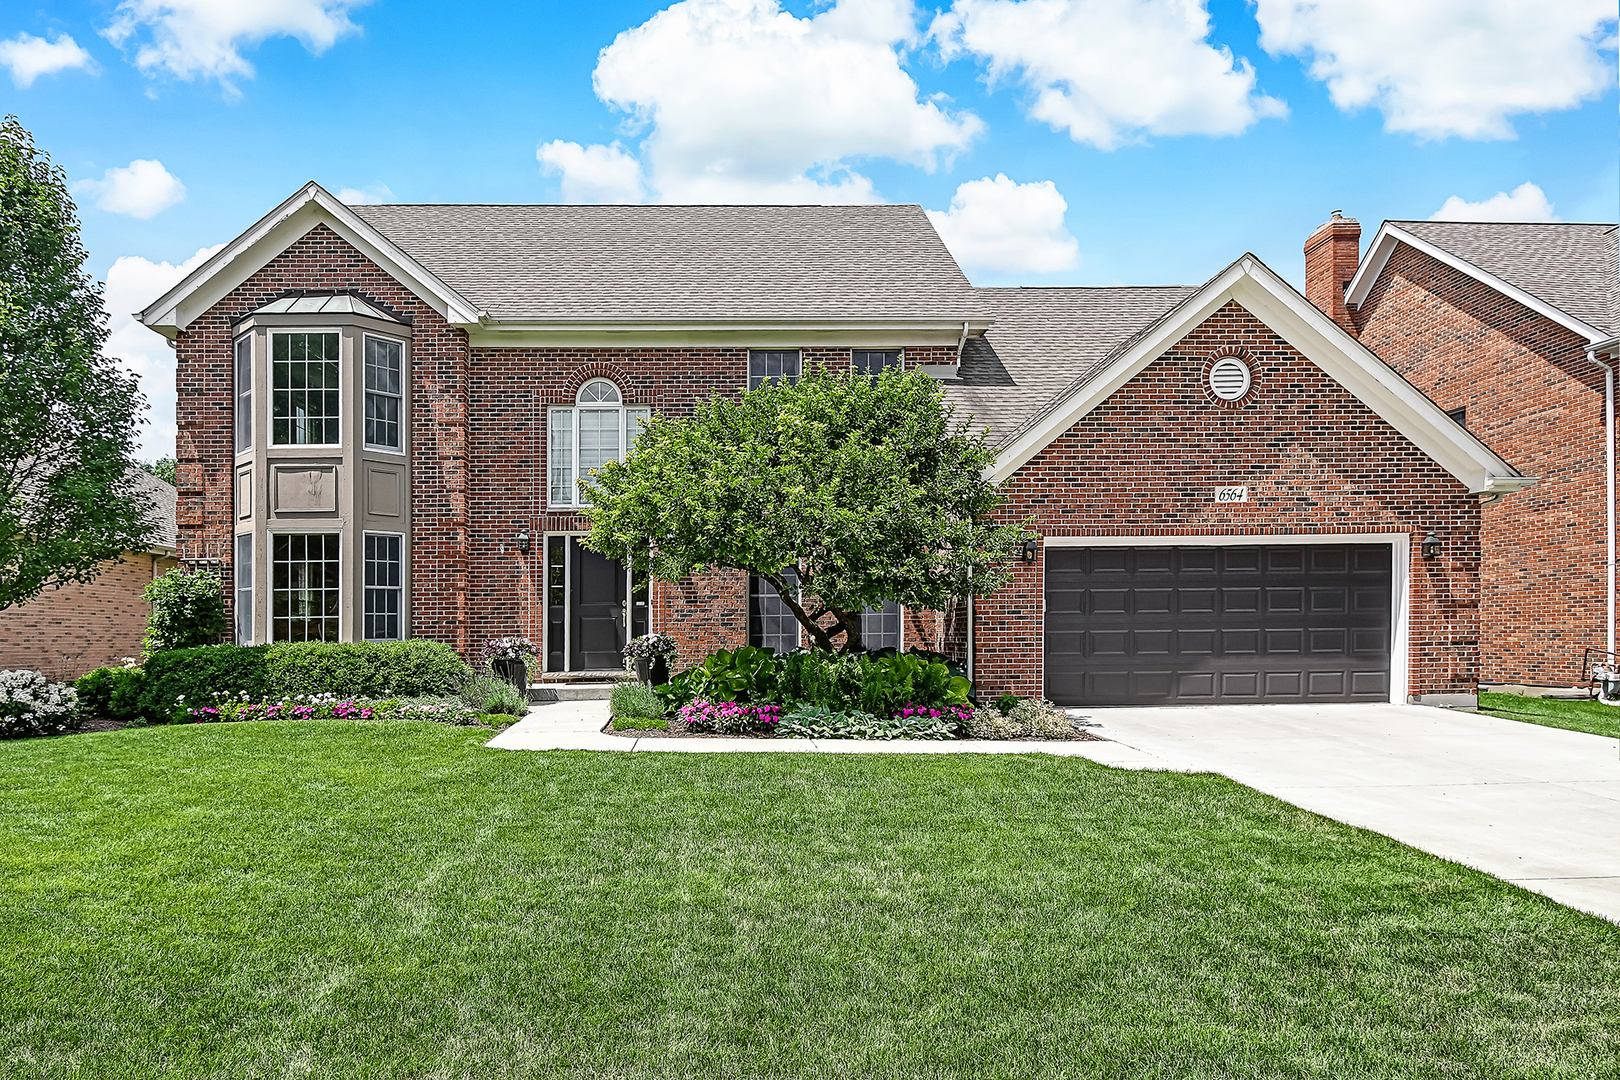 Photo for 6564 Berrywood Drive, Downers Grove, IL 60516 (MLS # 10799259)